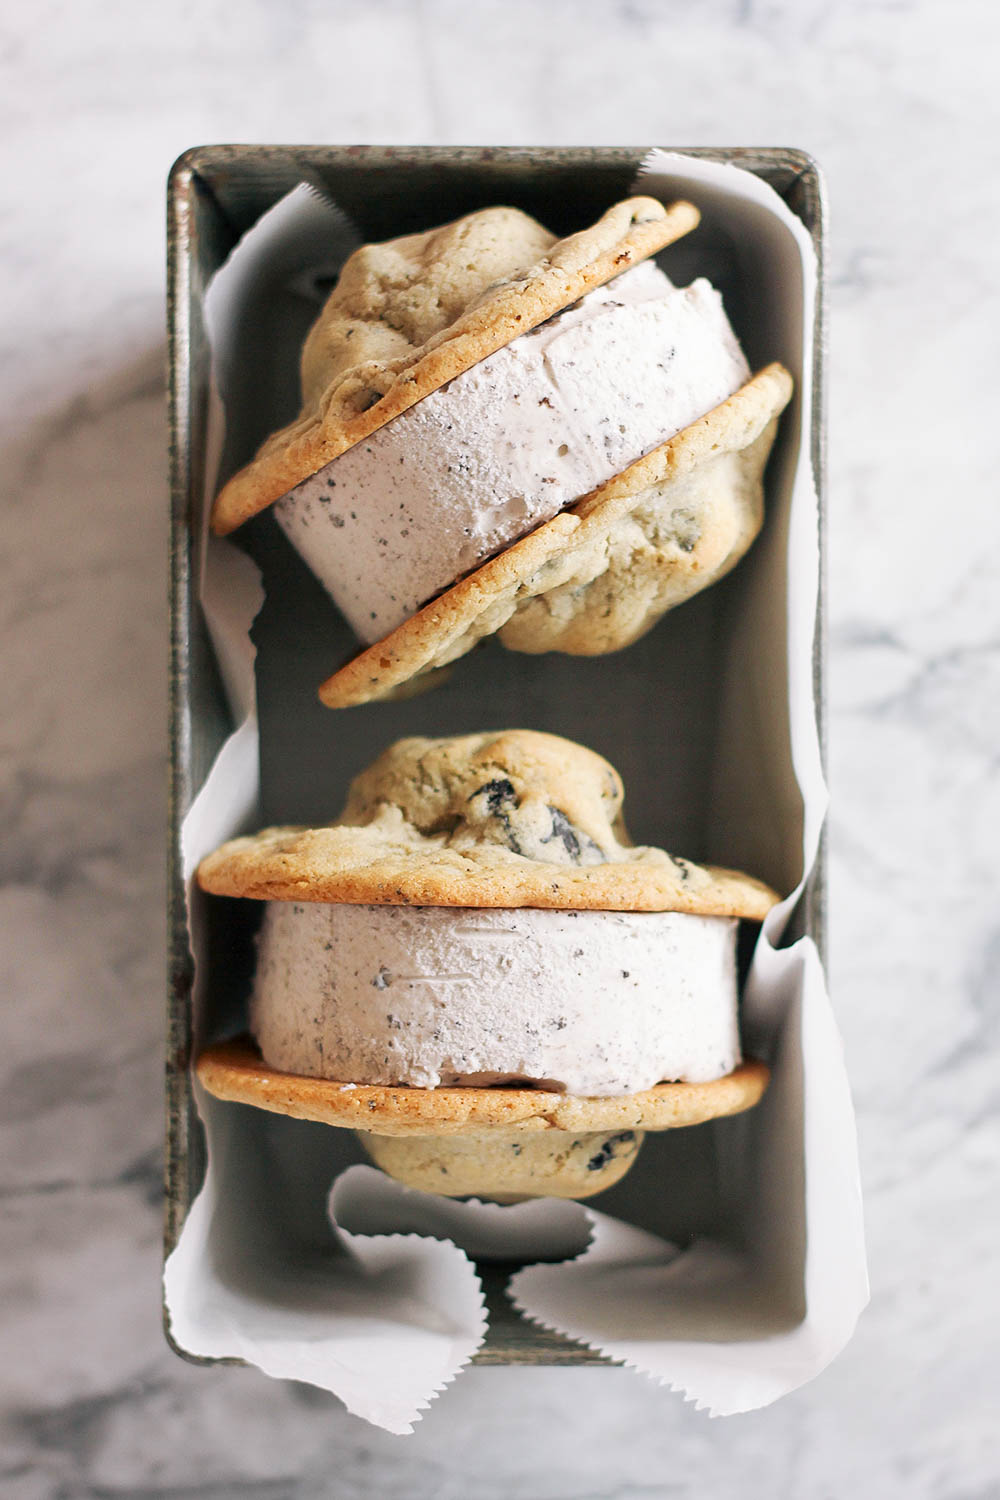 Triple Oreo ice cream sandwiches with Oreos baked right into the cookies. Get the full recipe at HomemadeBanana.com #recipe #oreo #dessert #icecreamsandwich